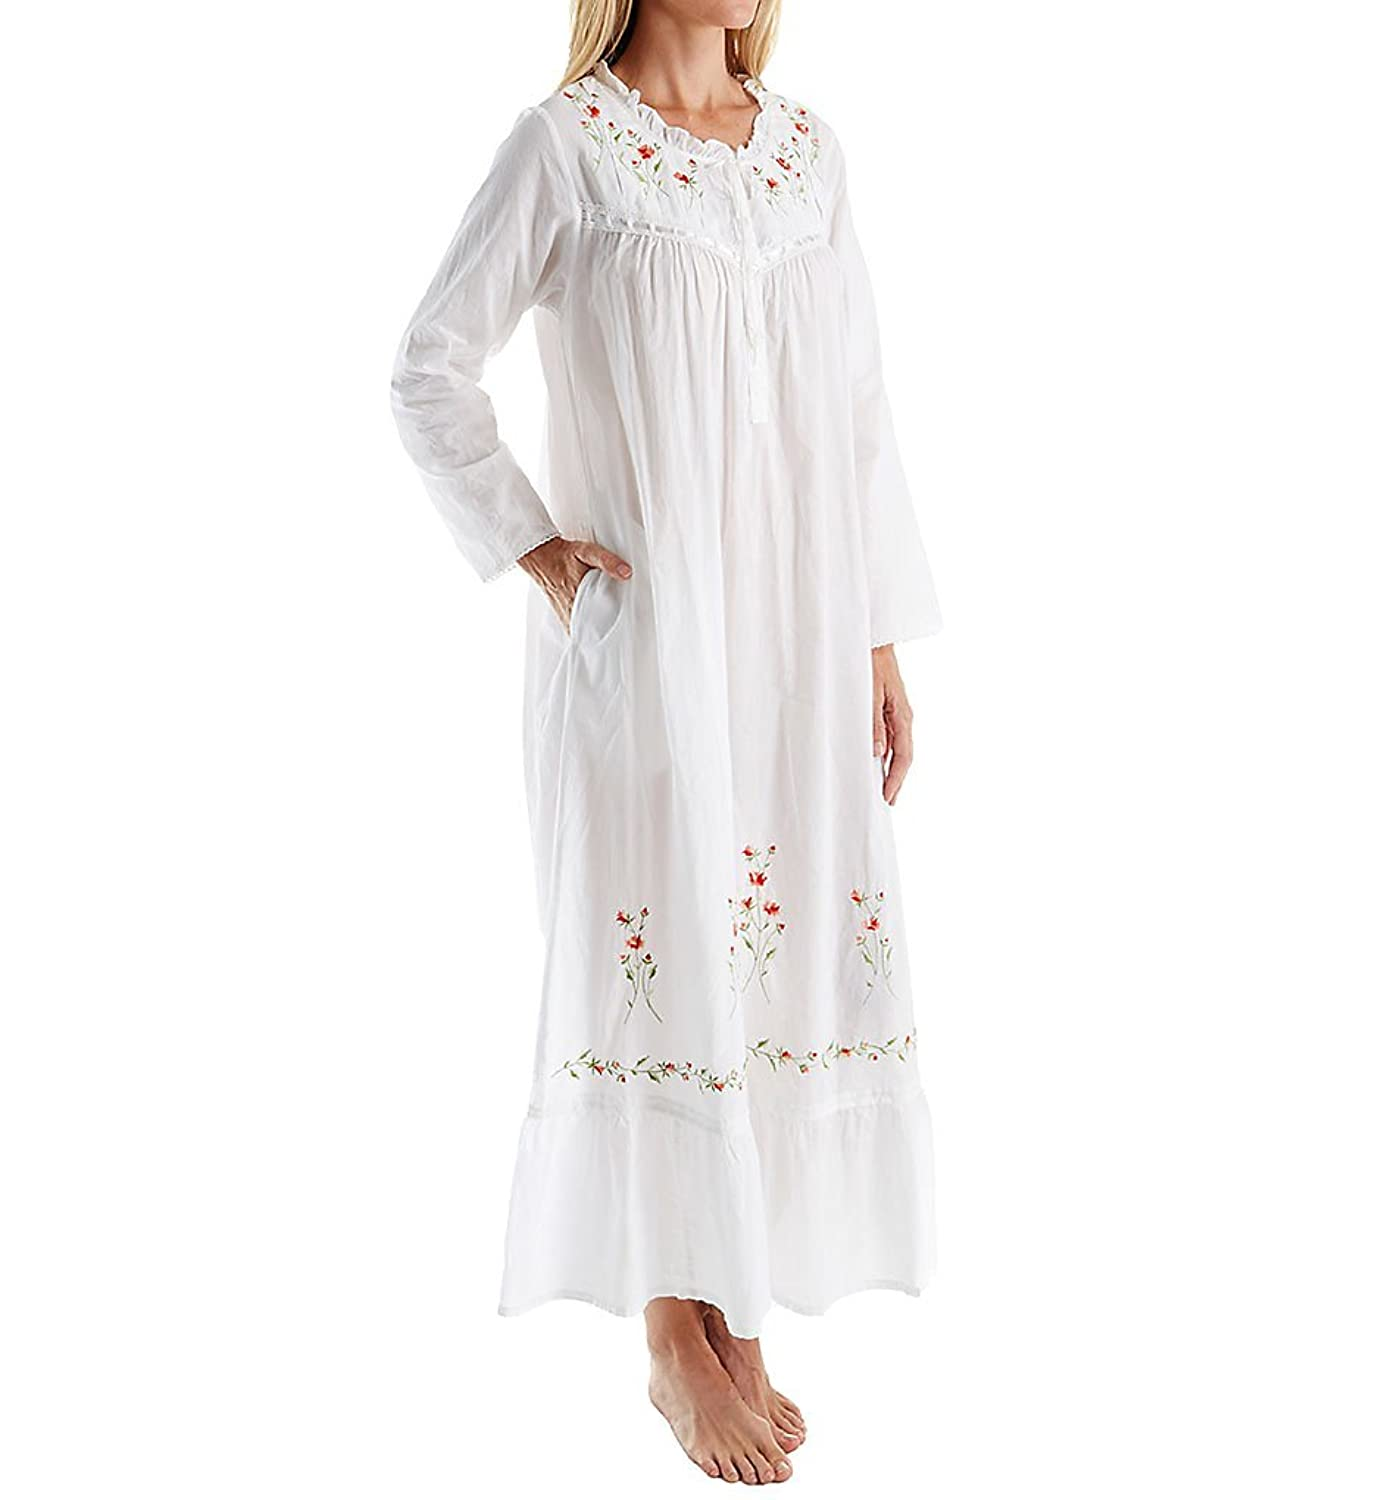 Victorian Nightgowns, Nightdress, Pajamas, Robes La Cera 100% Cotton Woven Long Sleeve Long Gown (1181A) $39.99 AT vintagedancer.com